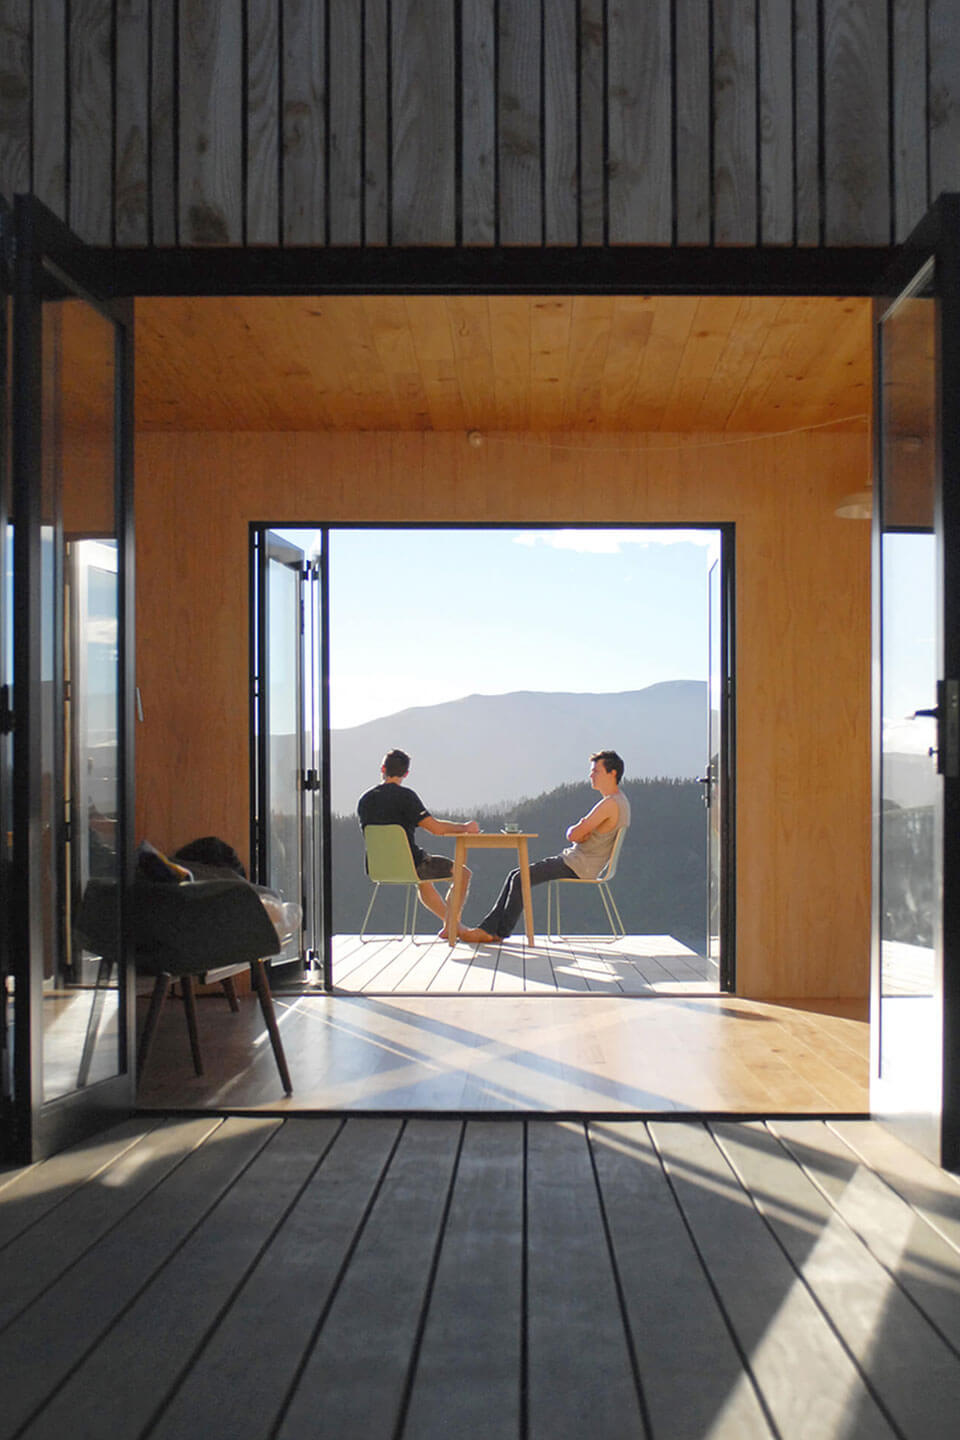 22_Warrander_Studio_Makers-of-Architecture